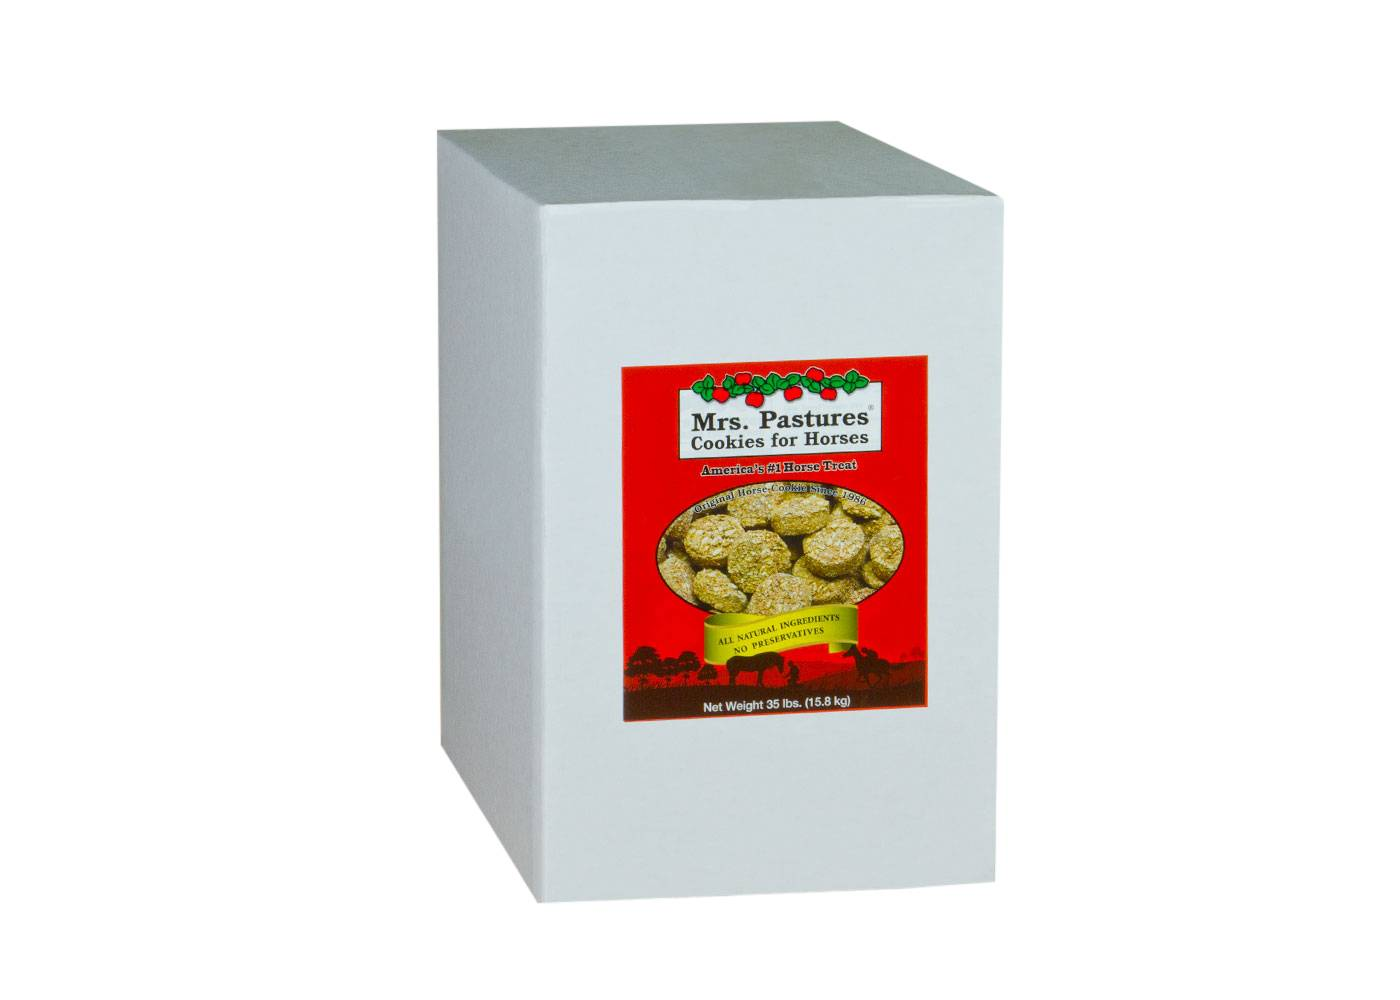 Mrs Pastures Cookies - Refill Box